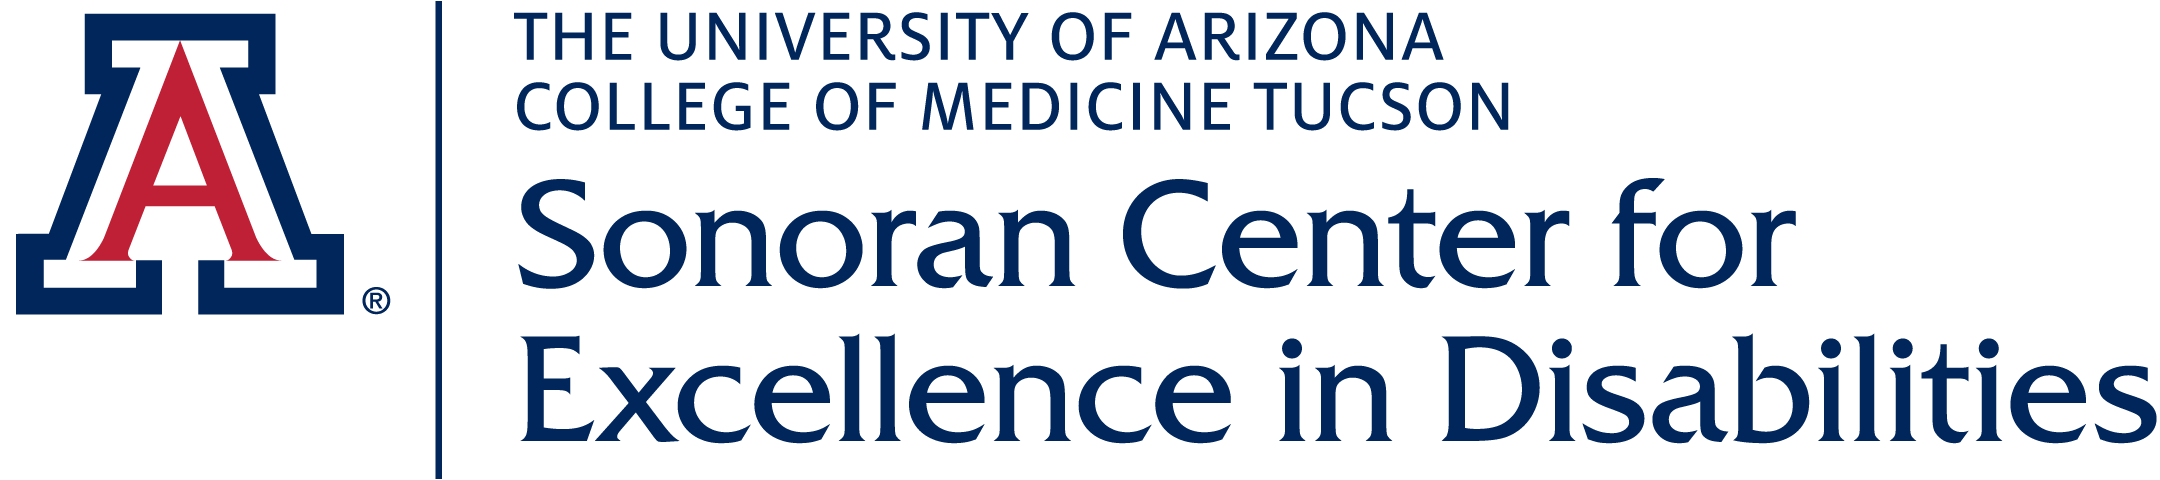 The University of Arizona College of Medicine Tucson Sonoran Center for Excellence in Disabilities